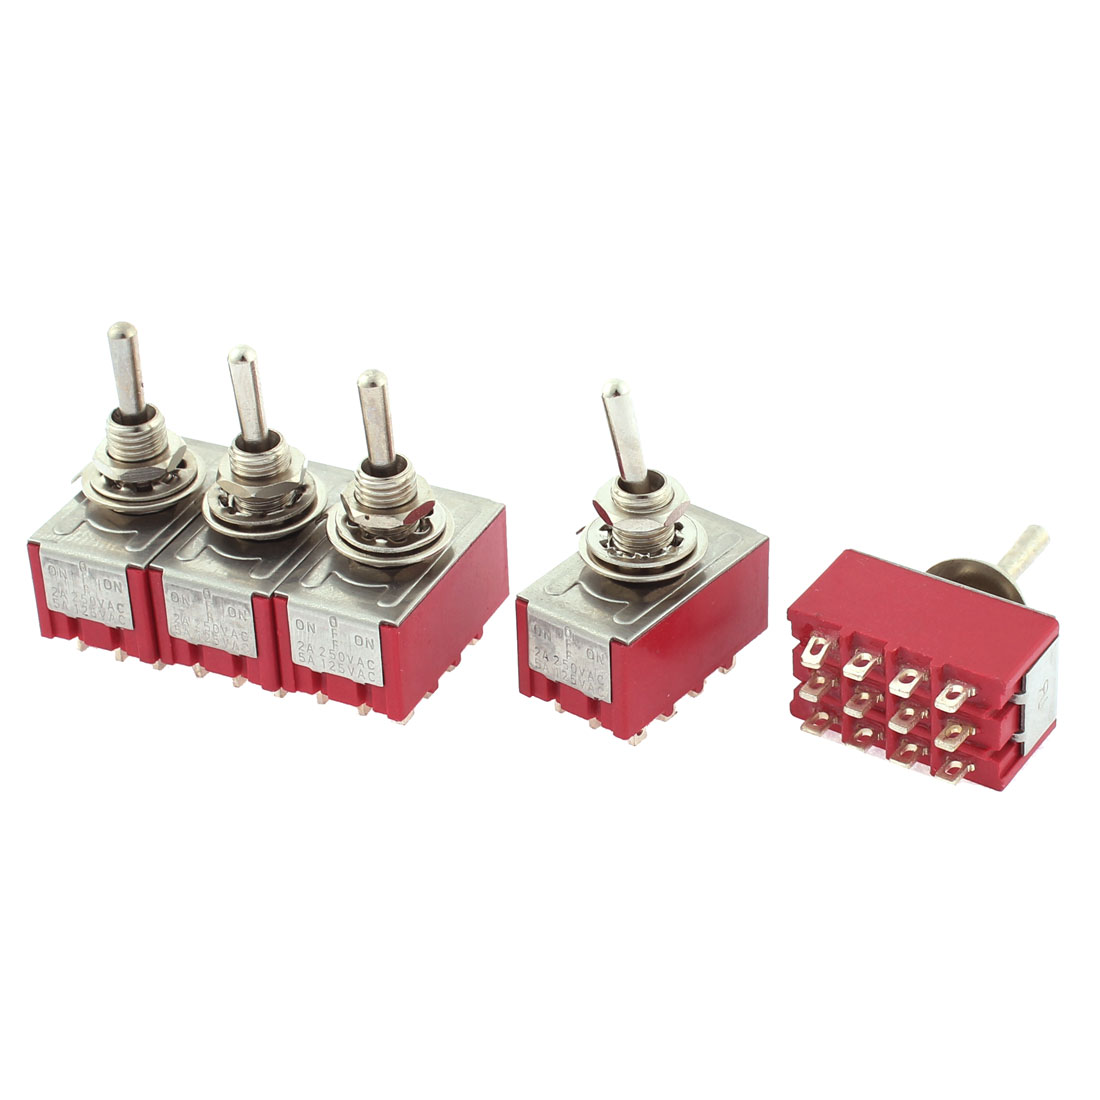 AC 250V 2A AC 120V 5A 4PDT ON-OFF-ON 12 Pins Latching Toggle Switch 5 Pcs